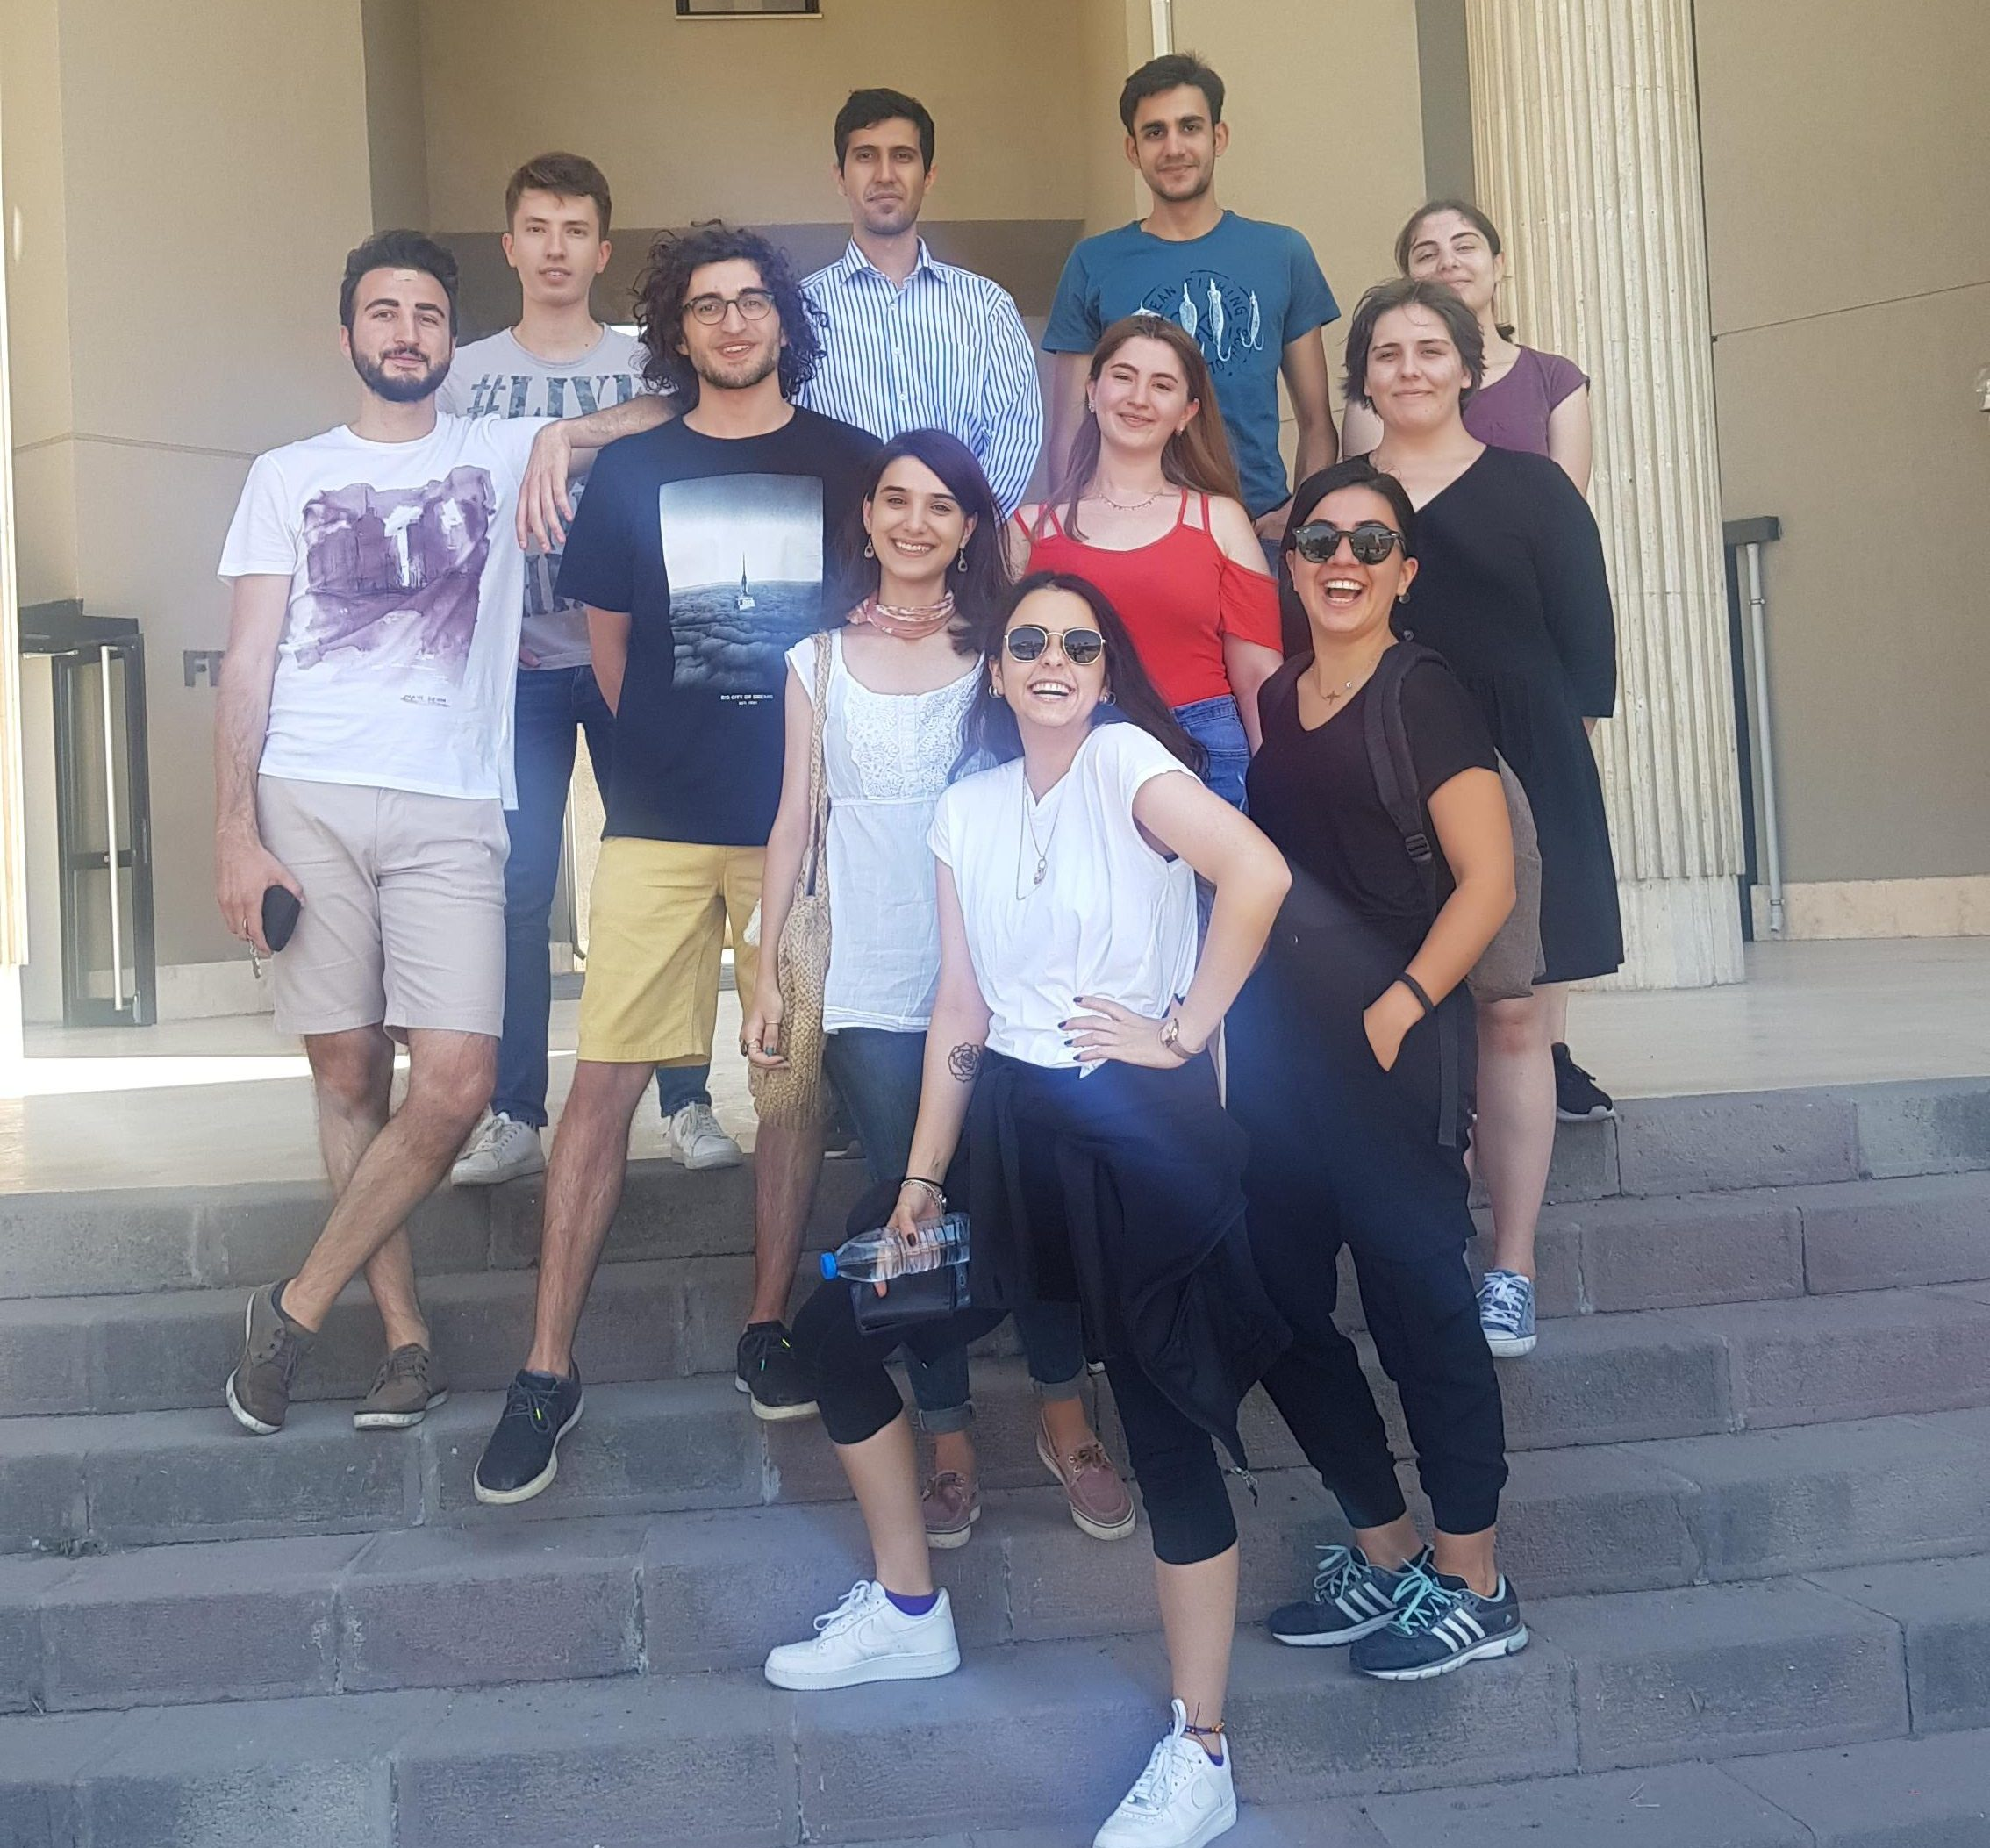 2018-2019 summer term interns of UMRAM graduated